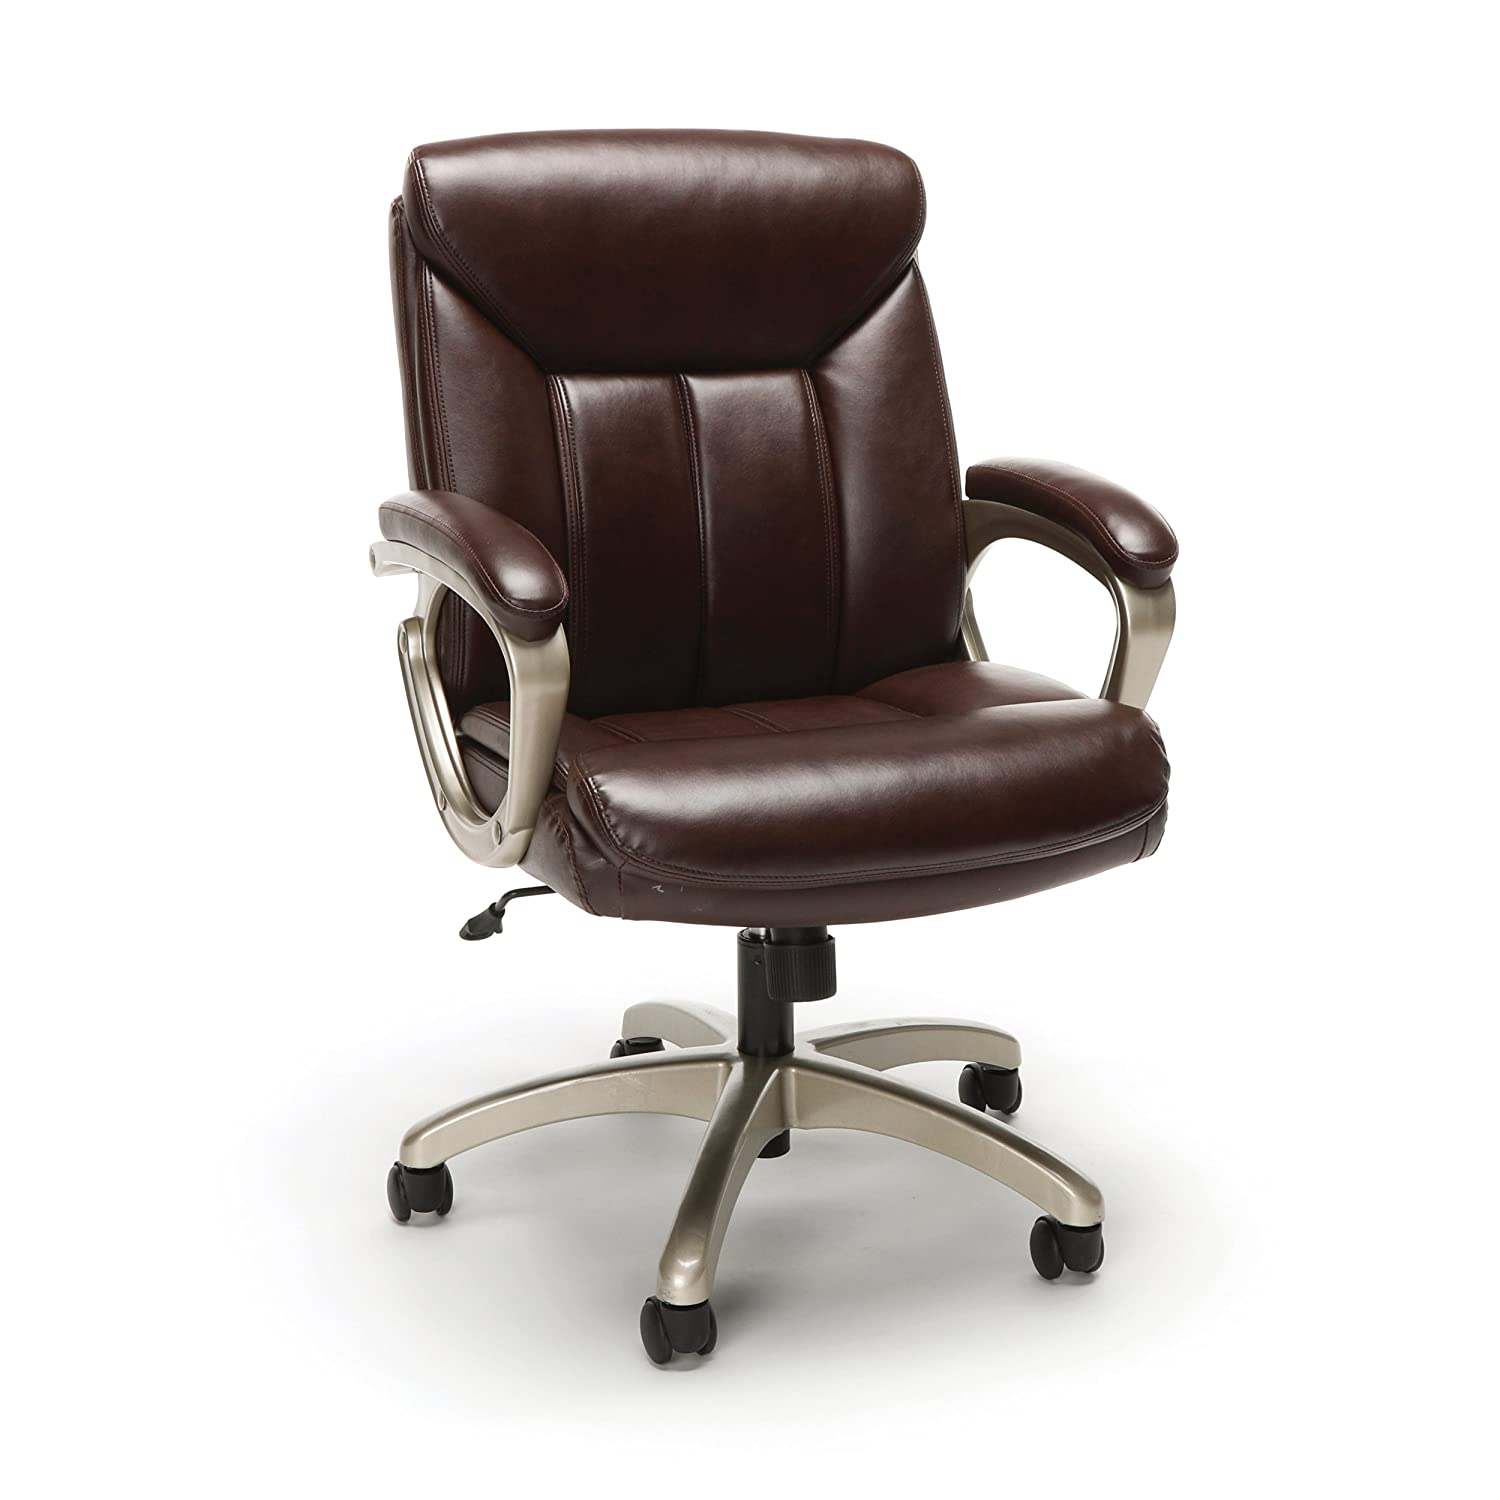 OFM Essentials Collection Executive Office Chair, in Brown with Champagne Frame (ESS-3020-BRN)